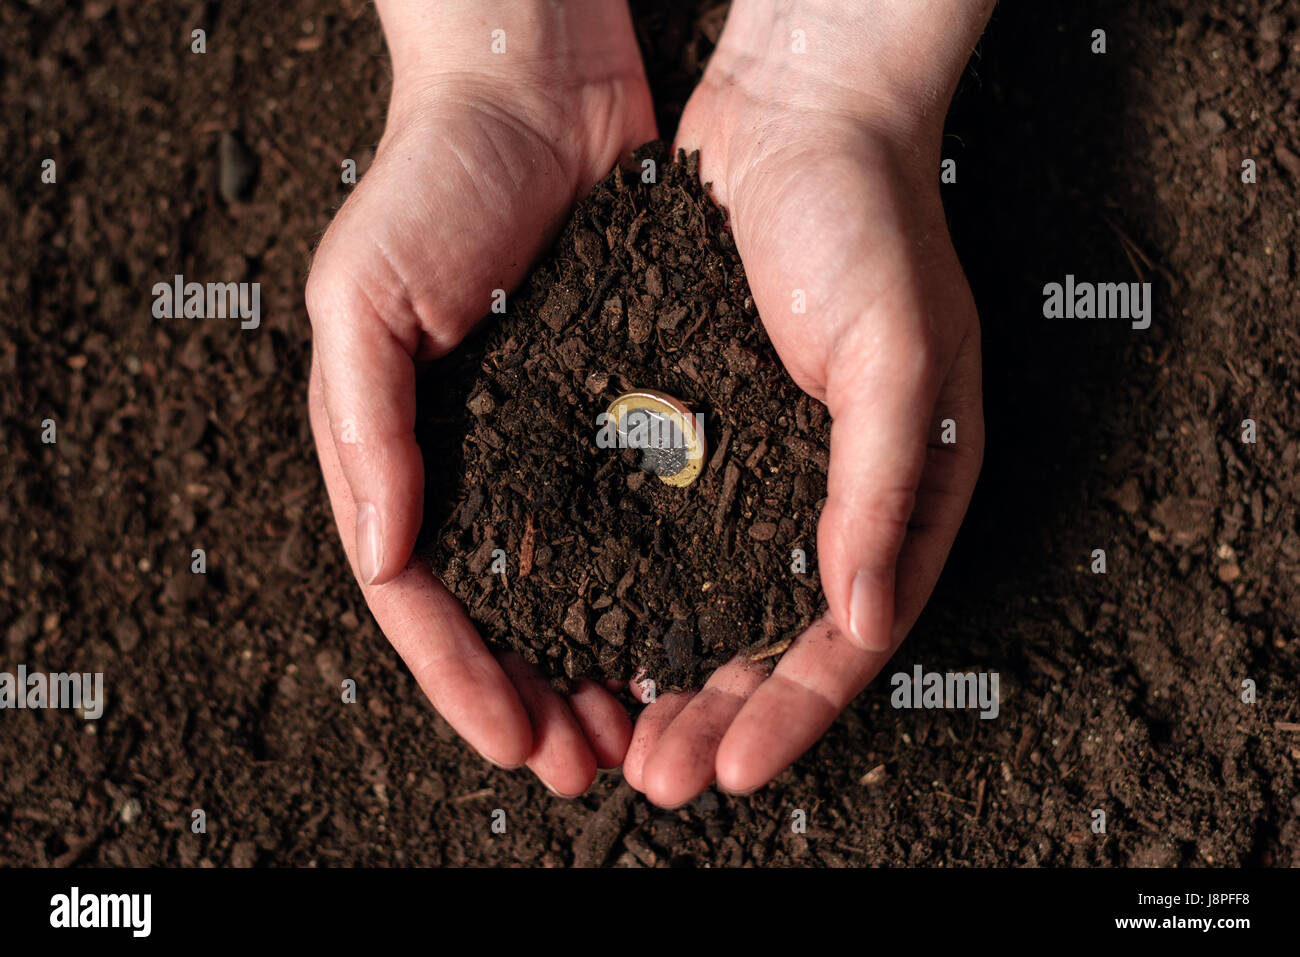 Making income from agricultural activity and earning extra money, female farmer handful of soil with euro coin - Stock Image